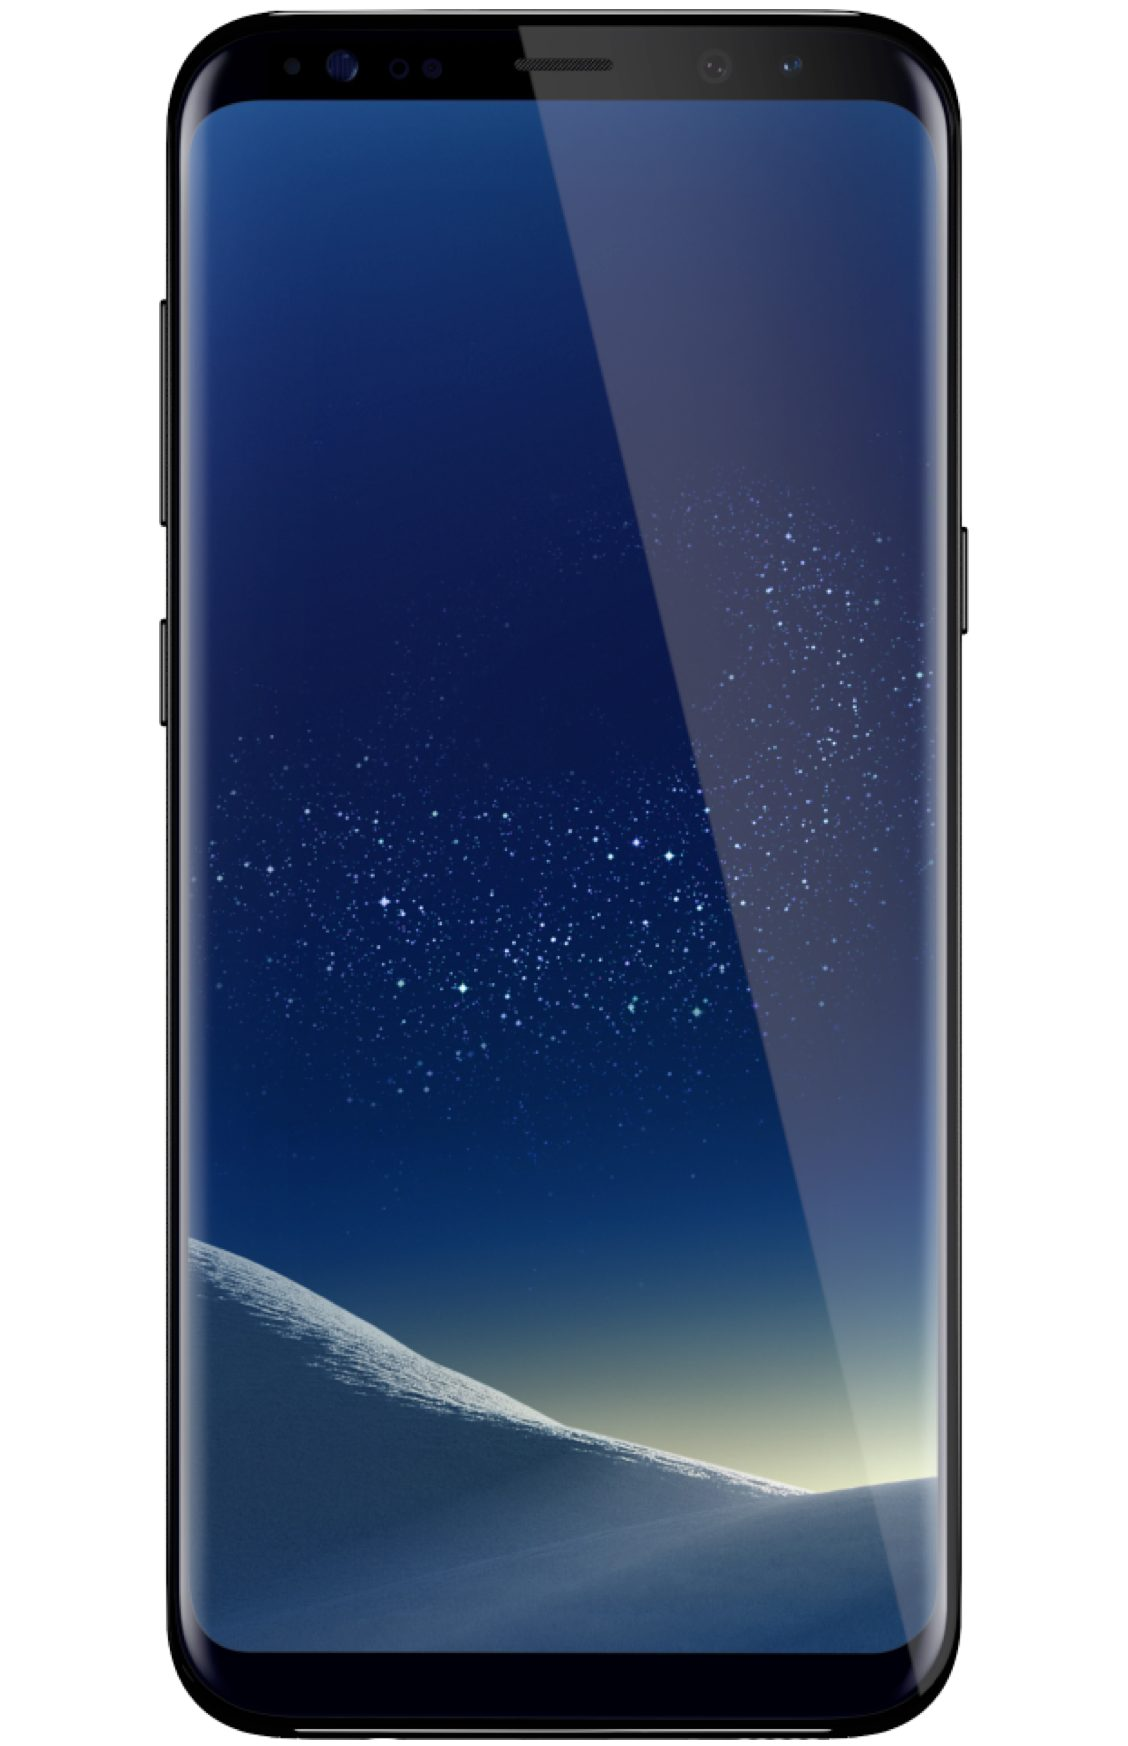 afd6ec19327 Samsung Galaxy S8+ Pre-Owned - Features